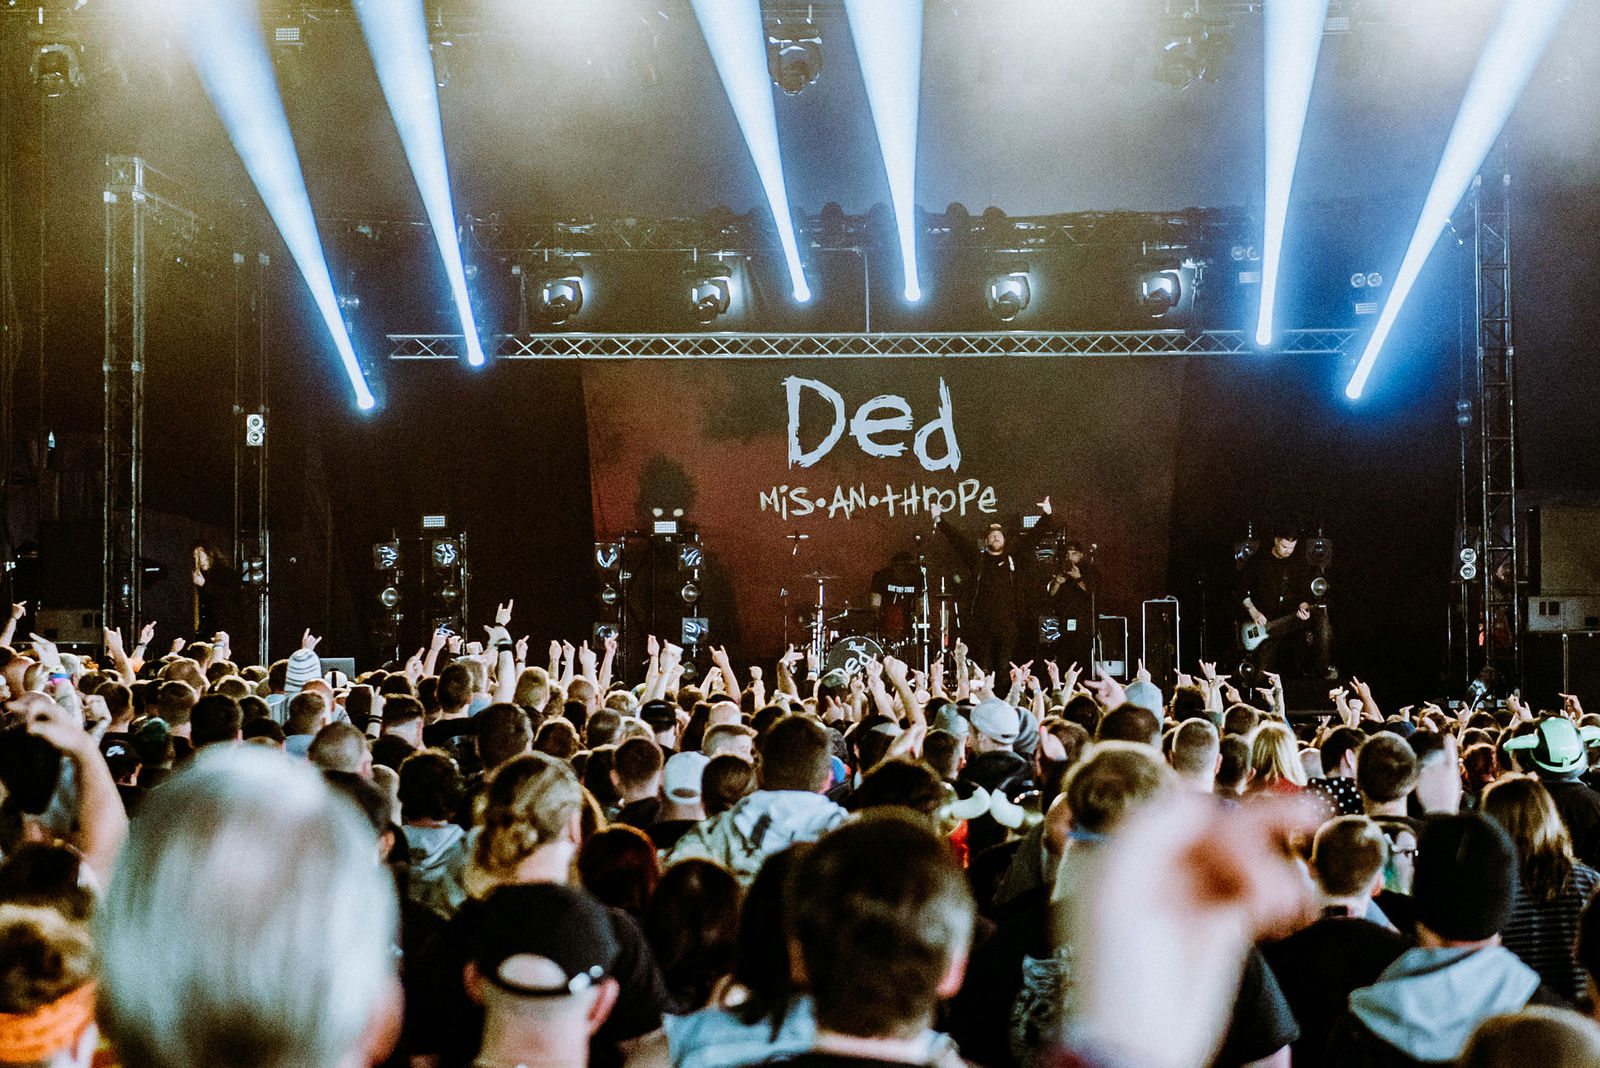 Ded in the Avalanche Stage.